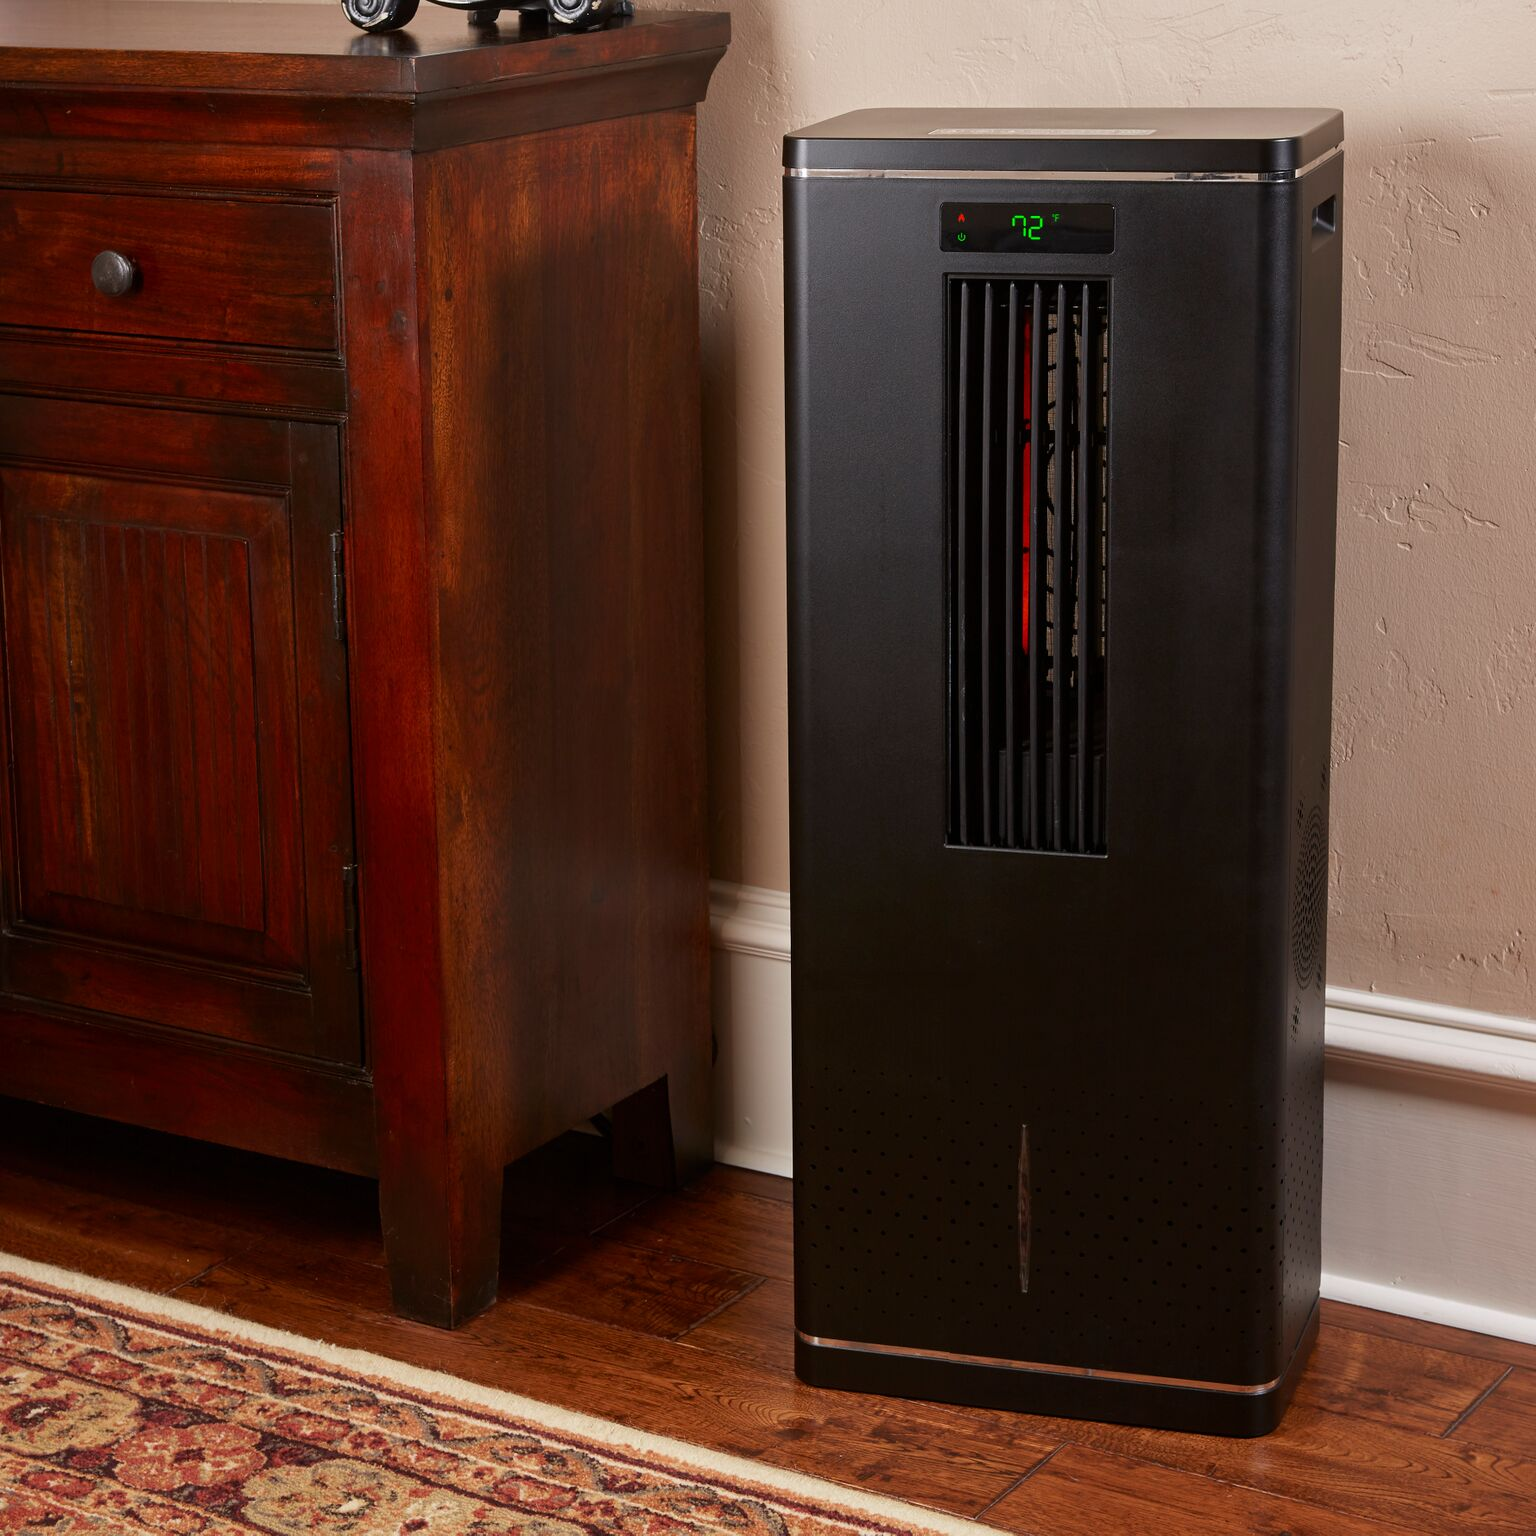 Lifesmart S4 All Season Cooling, Heating, Humidifier Tower